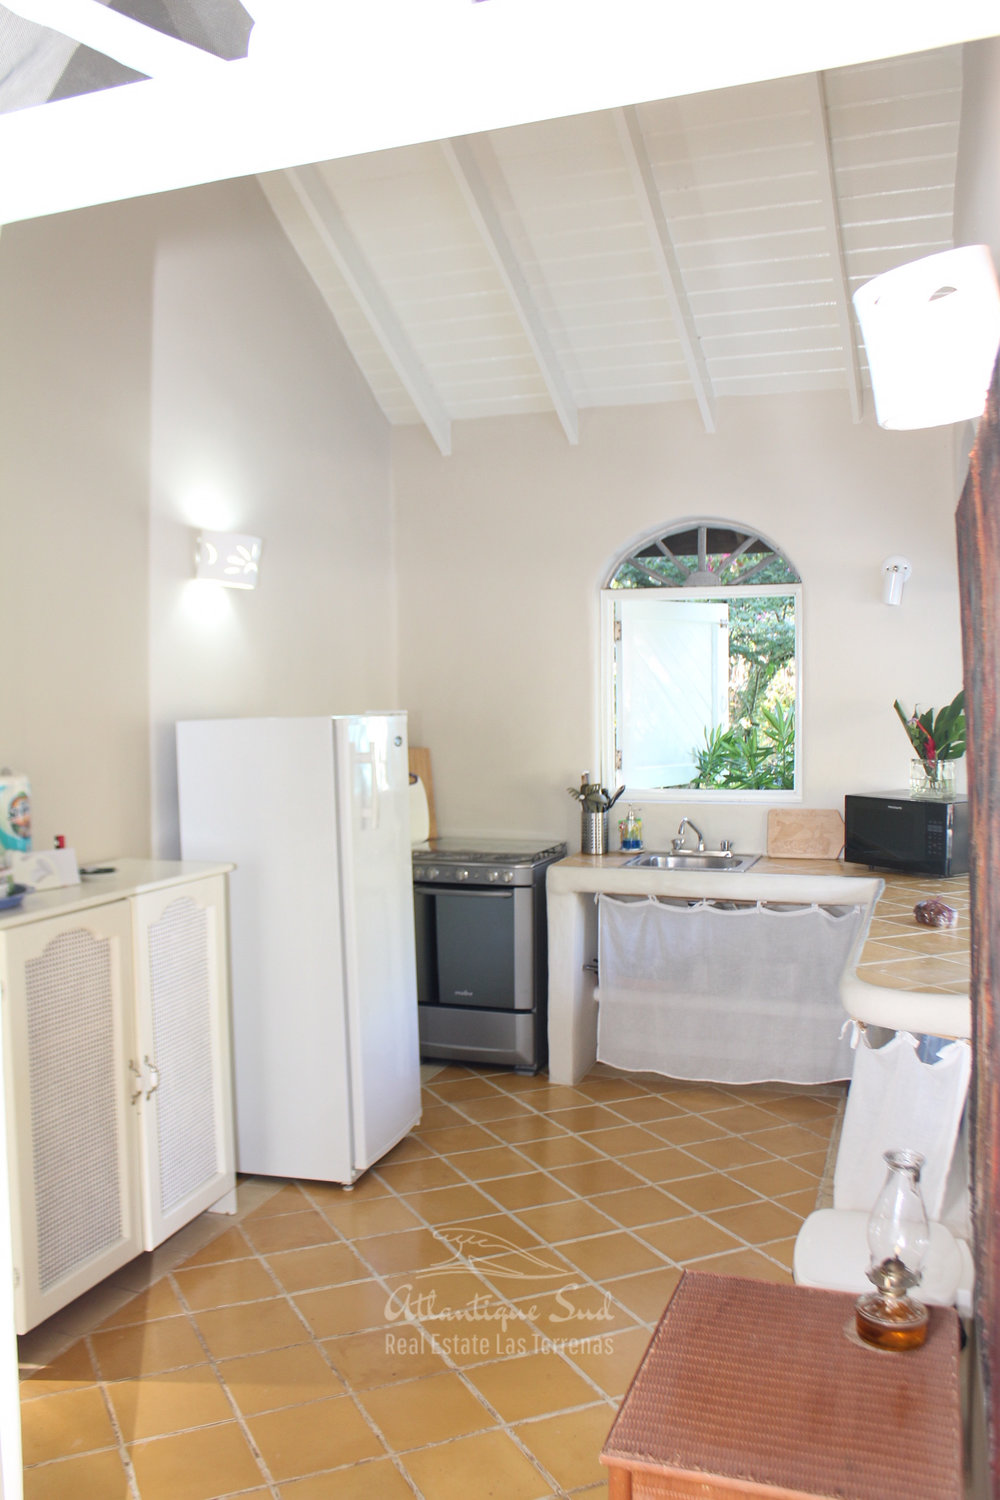 Domain of main villa and 5 separate bungalows ideal for bed & breakfast in Las Terrenas Real Estate Dominican Republic1 (6).jpg